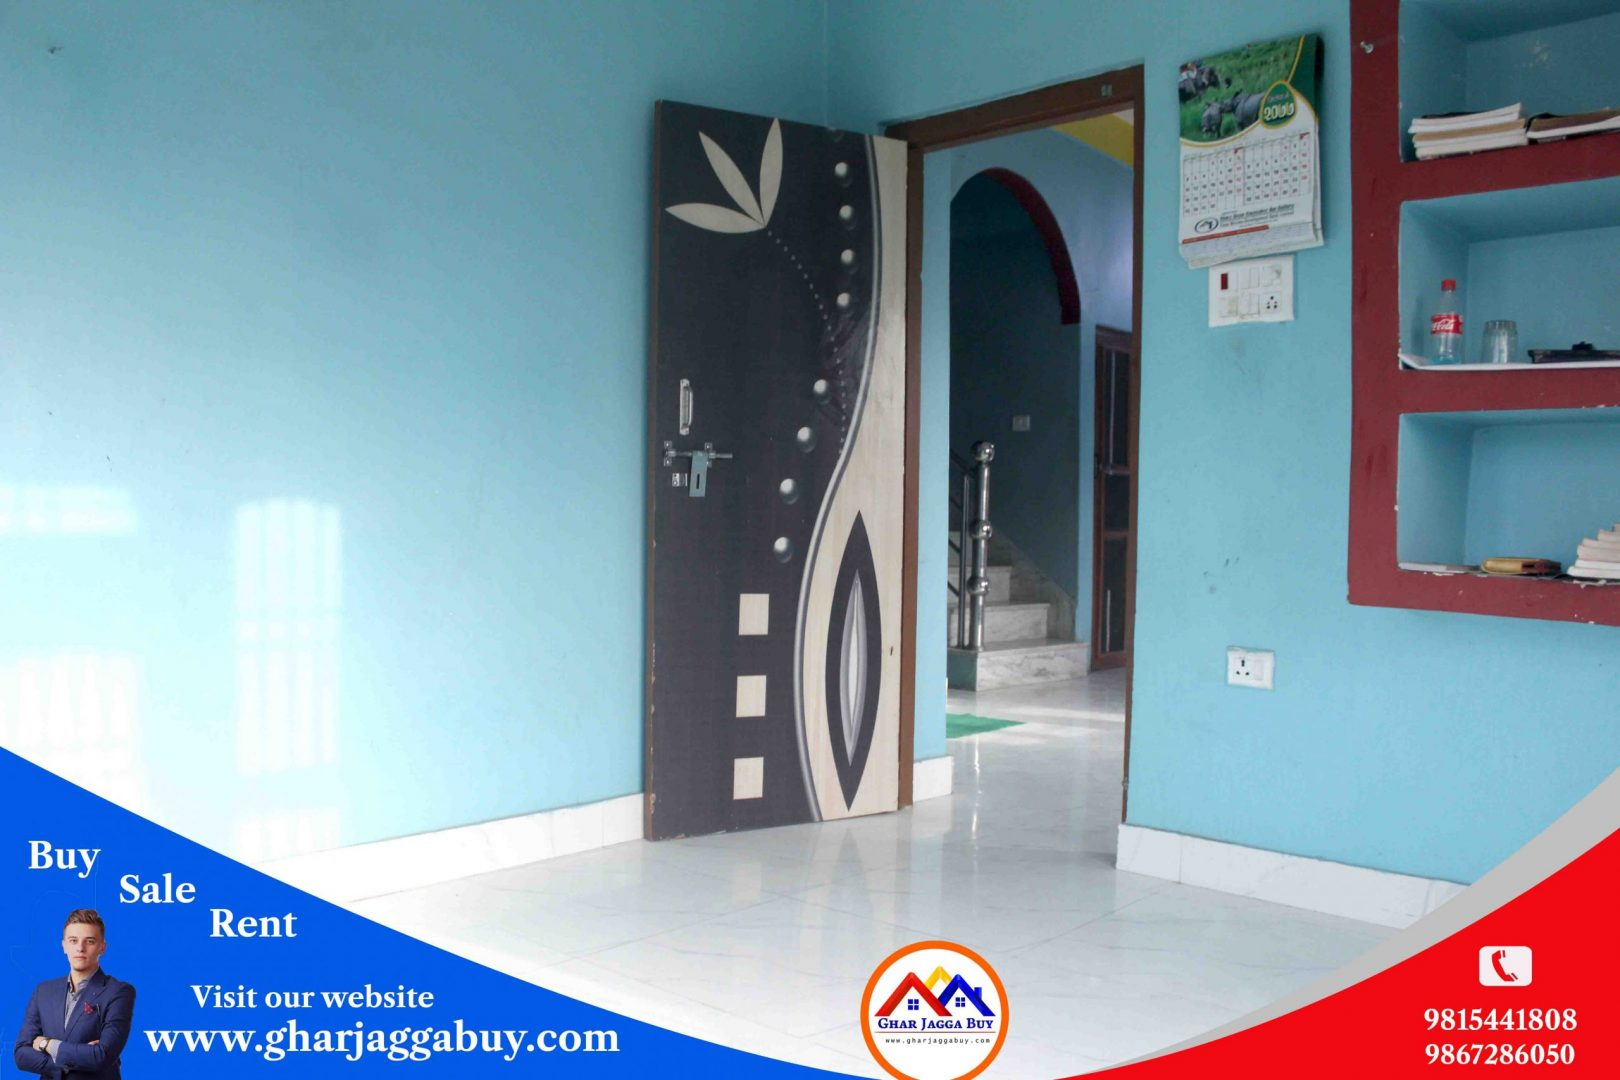 House for sale in Mangalapur, Rupandehi